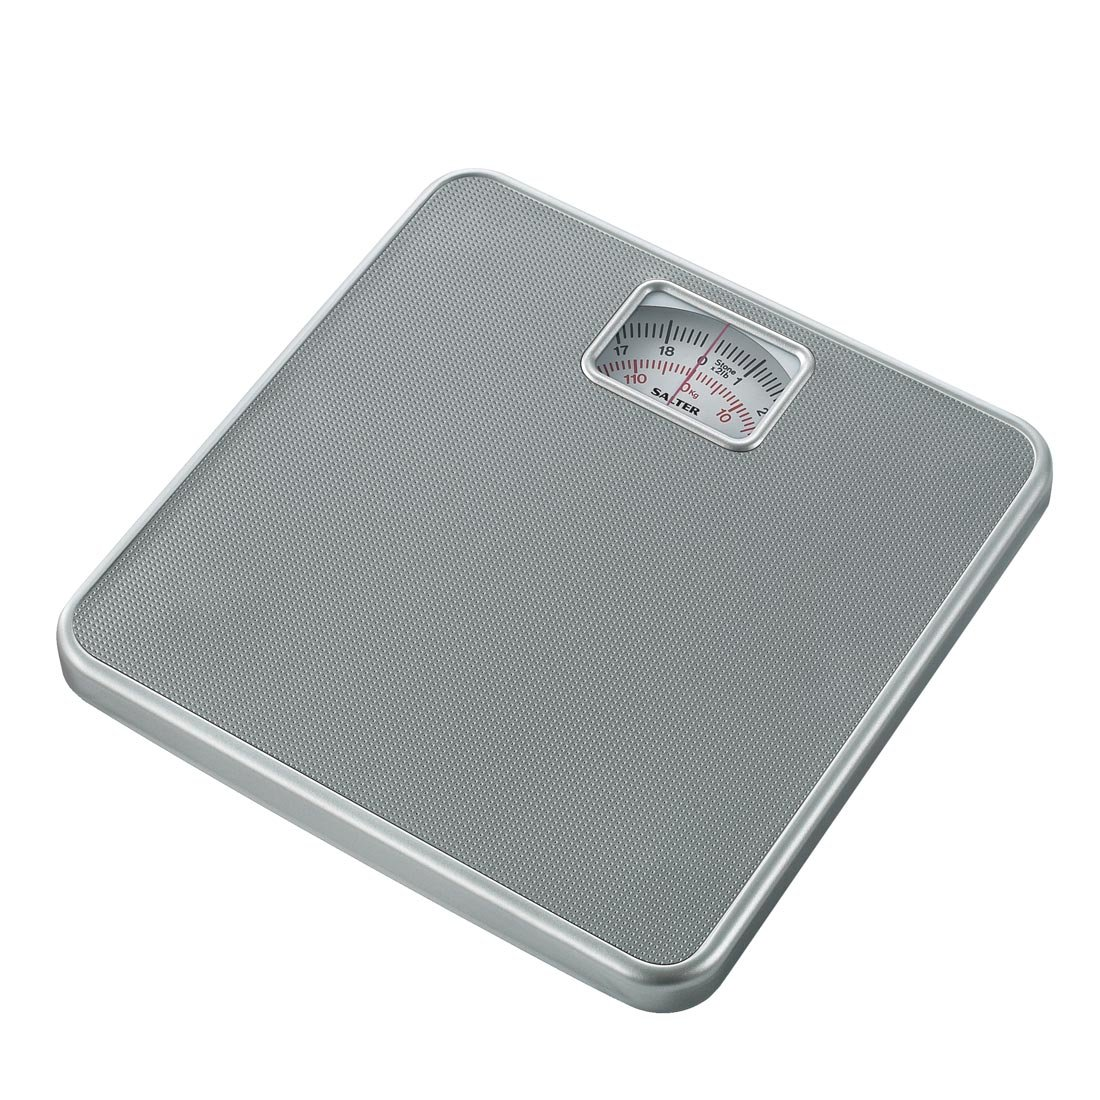 Salter Compact Mechanical Bathroom Scales – Easy to Read Analogue Dial, Fast + Reliable Weighing, Sturdy Platform, 120kg Capacity, No Buttons / Batteries, Hassle Free, 15 Year Guarantee - Silver FKA Brands Ltd 433 SVDR Mechanical Scales